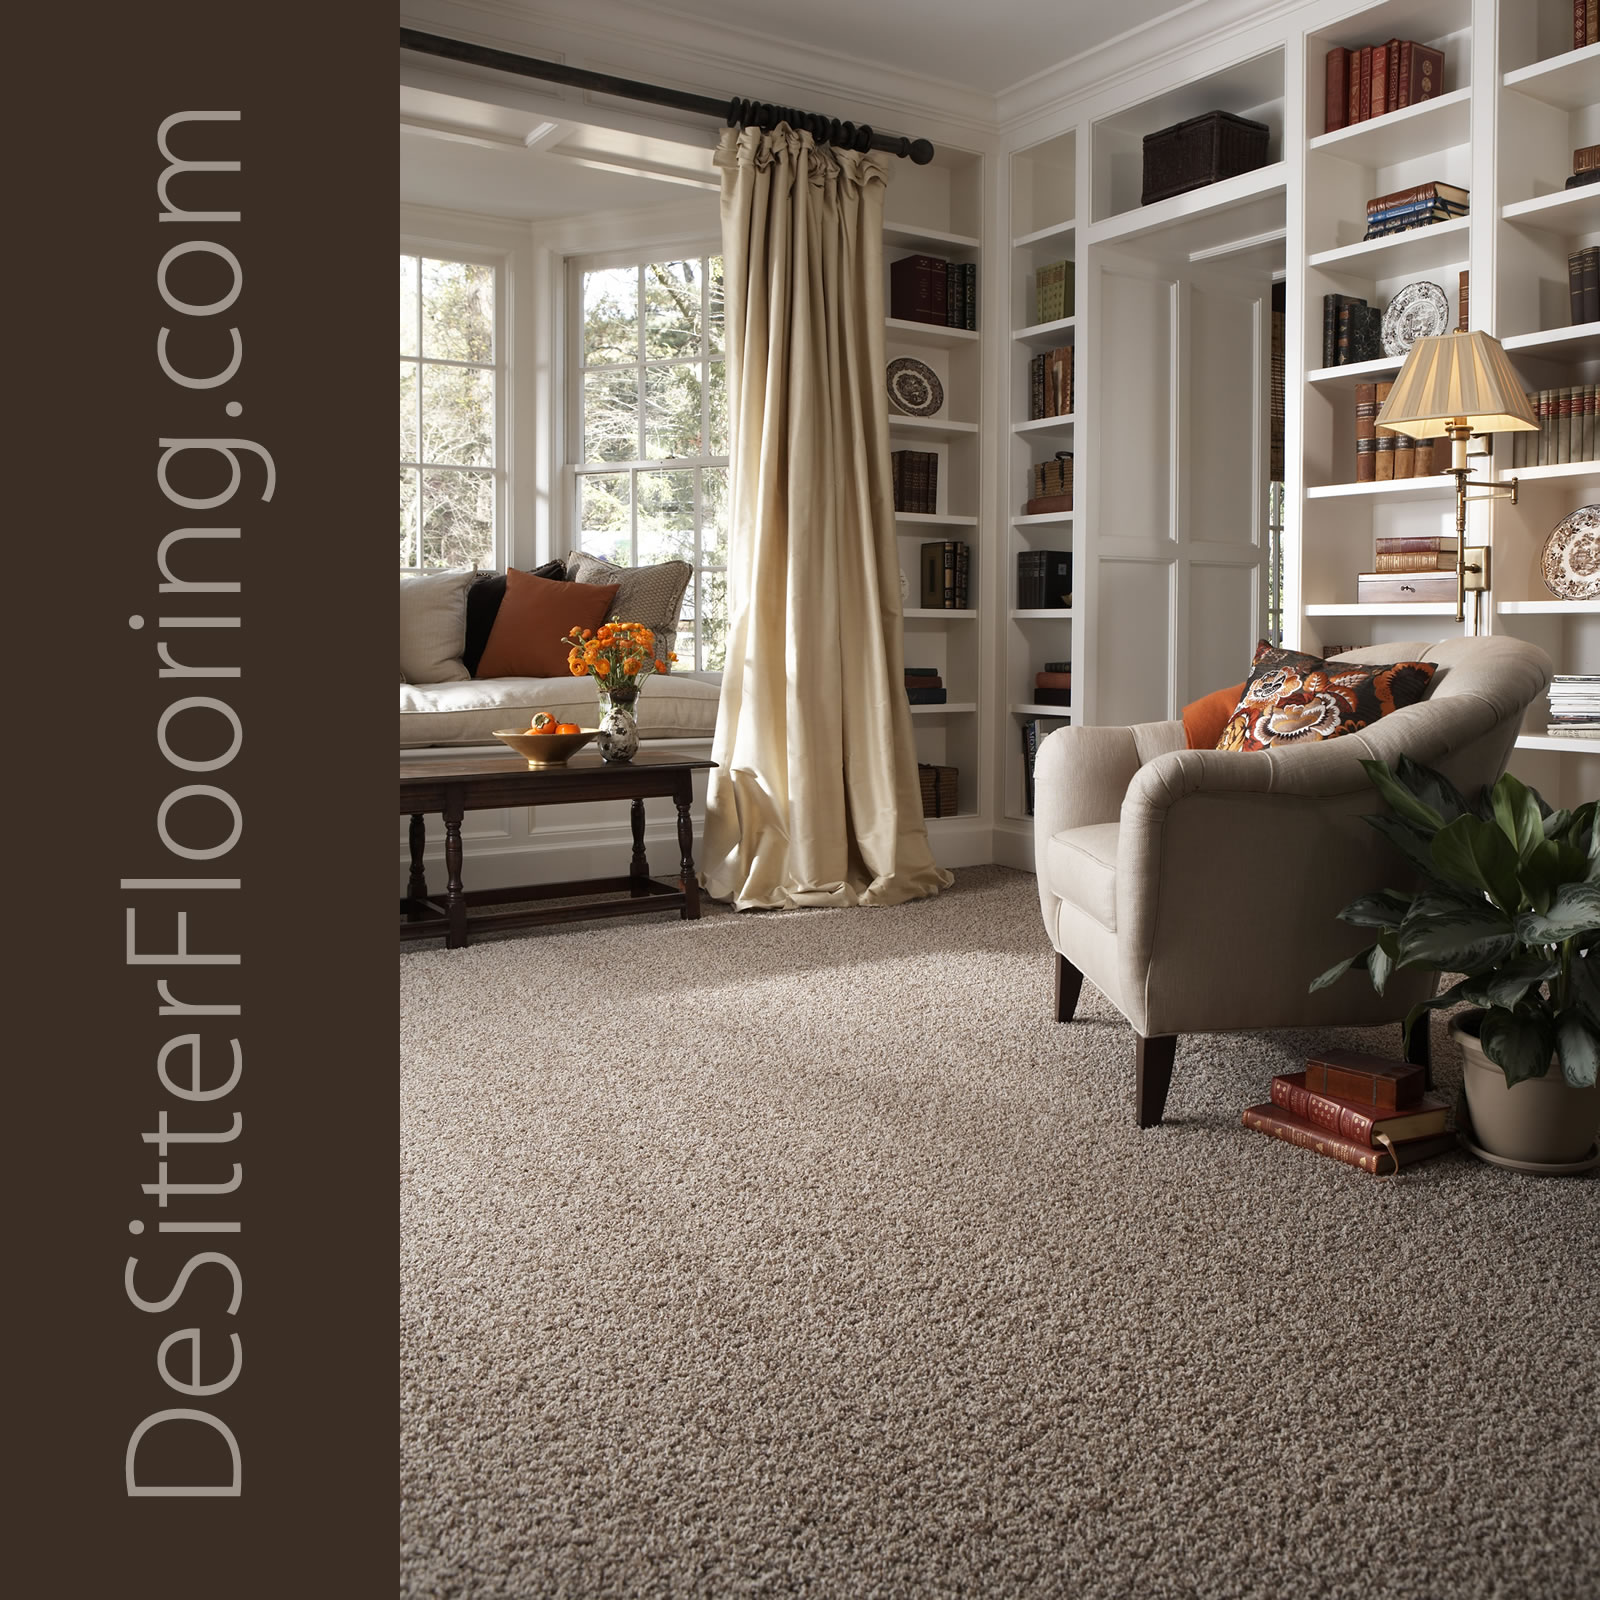 Geneva 60134 residential new carpet installation desitter flooring our new carpet selection at desitter flooring will add a striking yet simple accent to any living space call us today 630 948 5582 or contact us online tyukafo